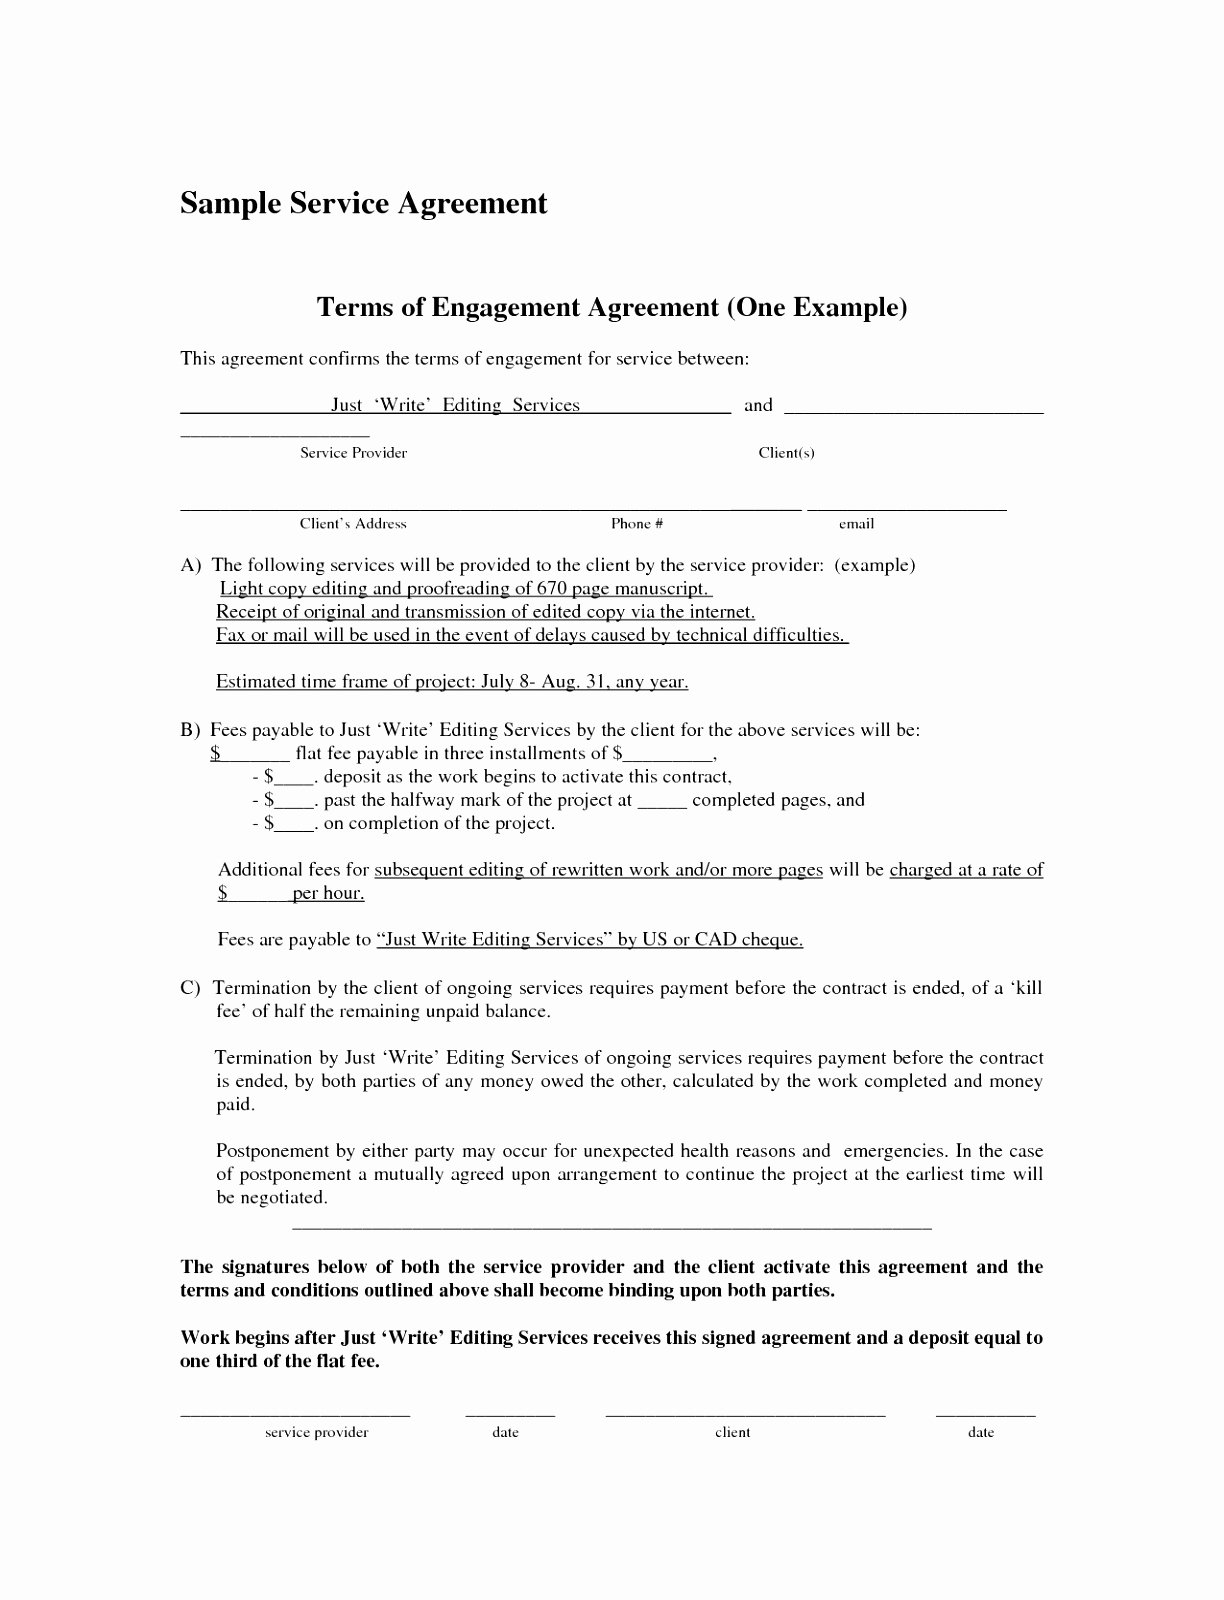 Simple Service Agreement Template Best Of 5 Simple Contract for Services Template Free Pixoe